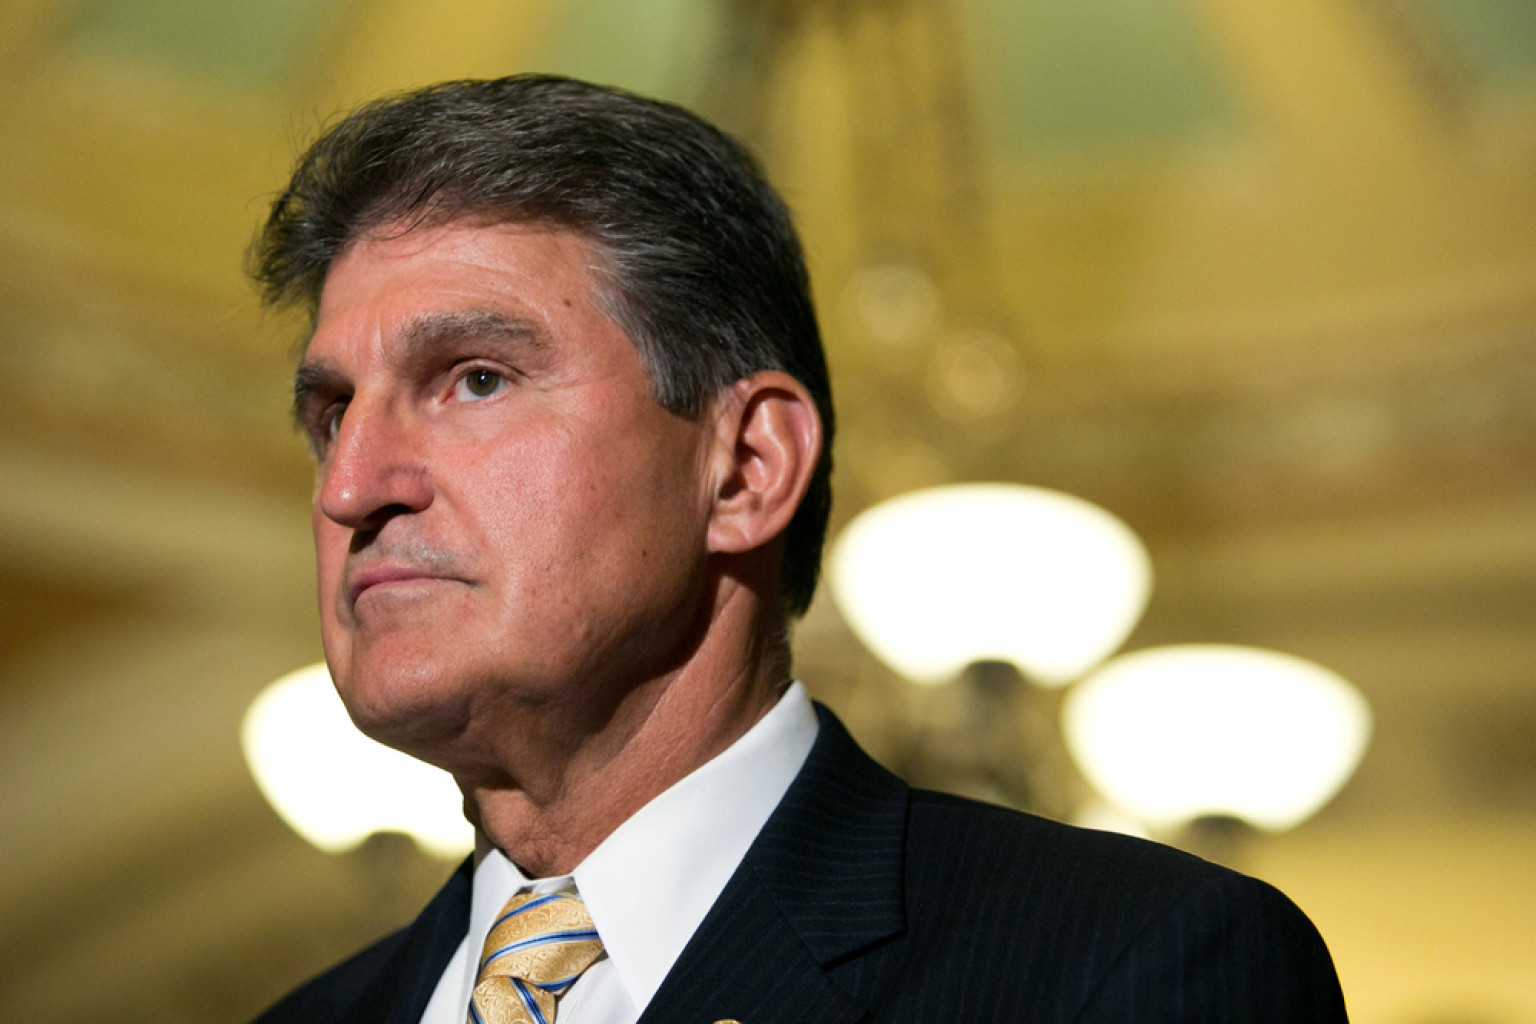 Manchin urged his colleagues Tuesday afternoon to come together and not campaign against a sitting senator in the upcoming November election cycle